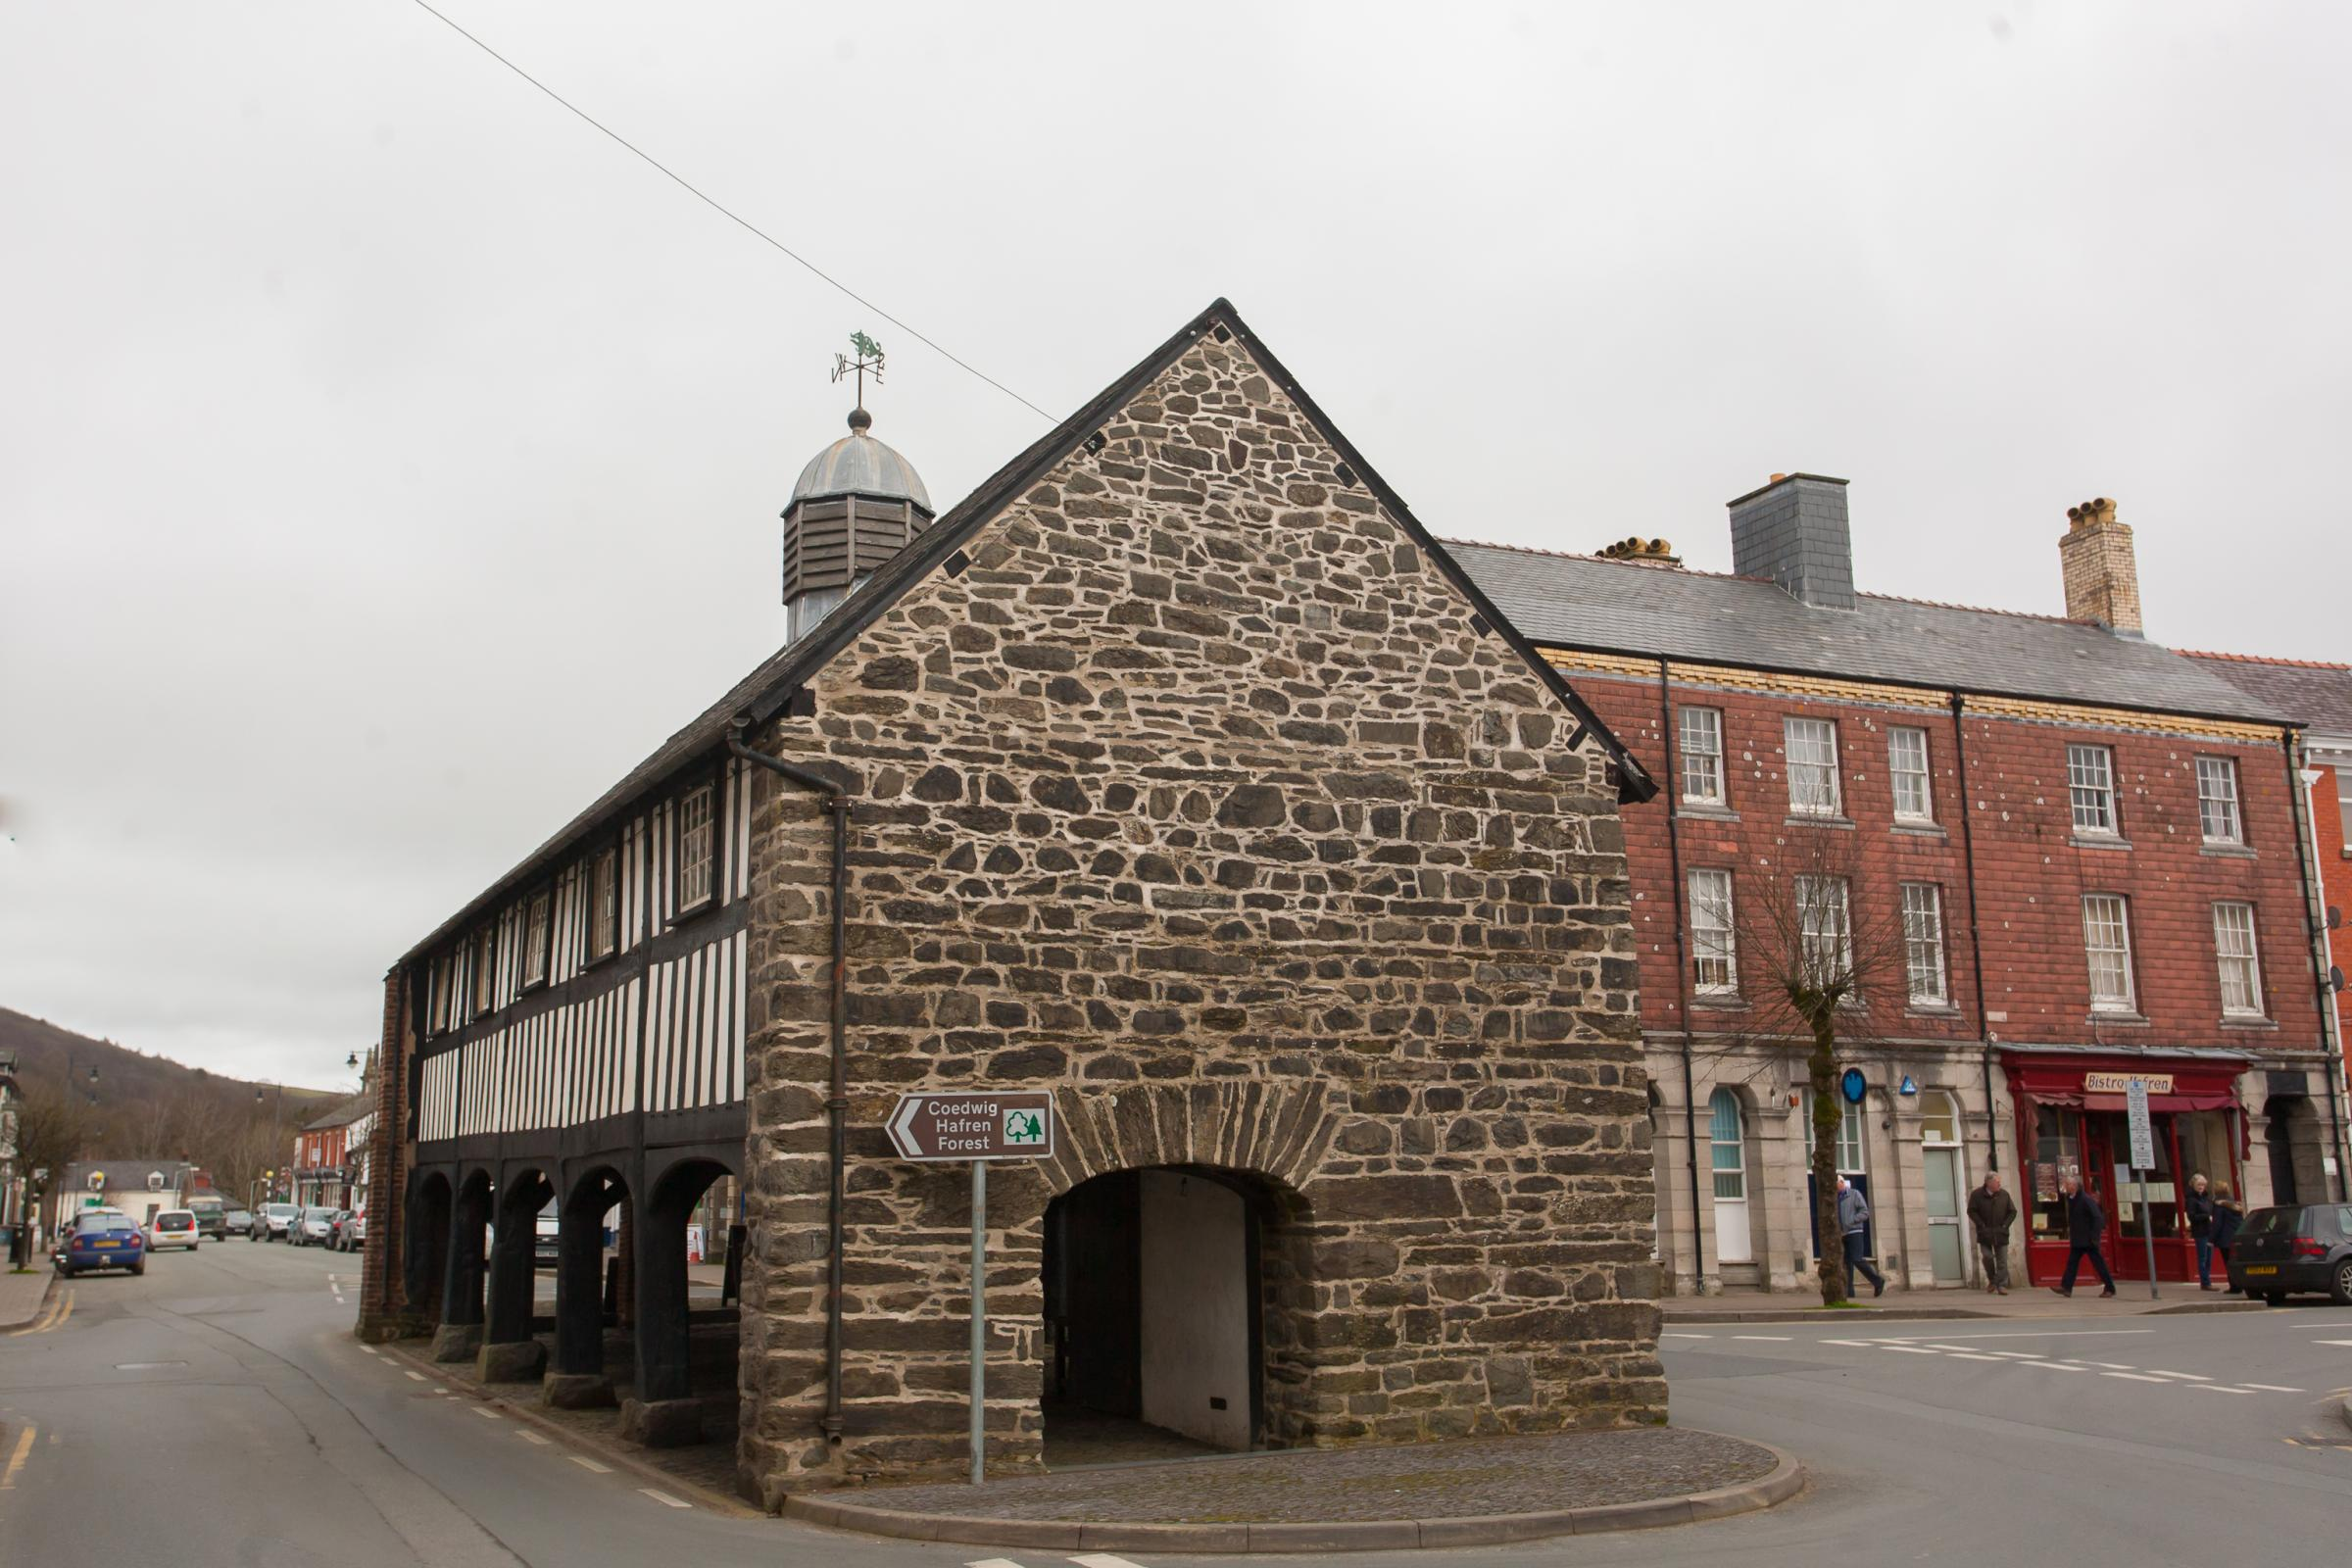 Llanidloes Market Hall exhibition funding cut to be challenged